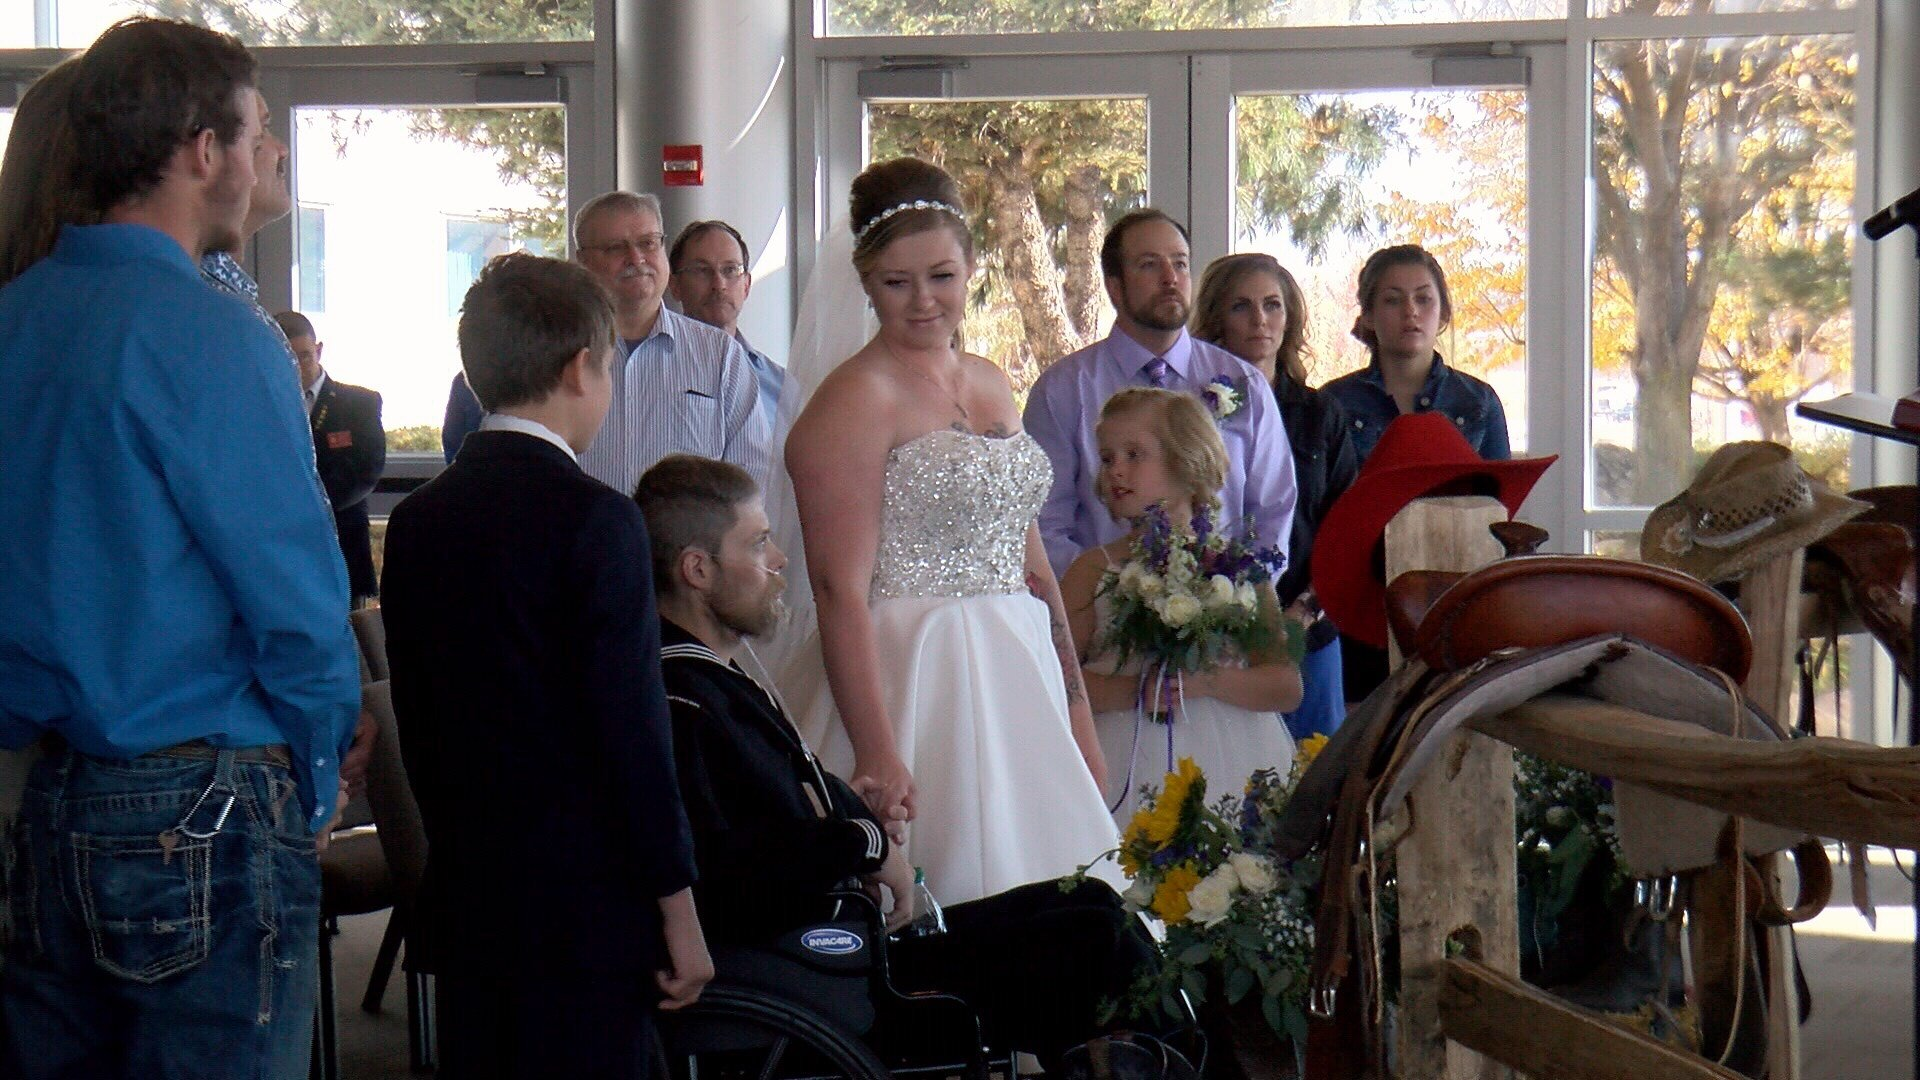 Colin Thomas and his wife renew their wedding vows.